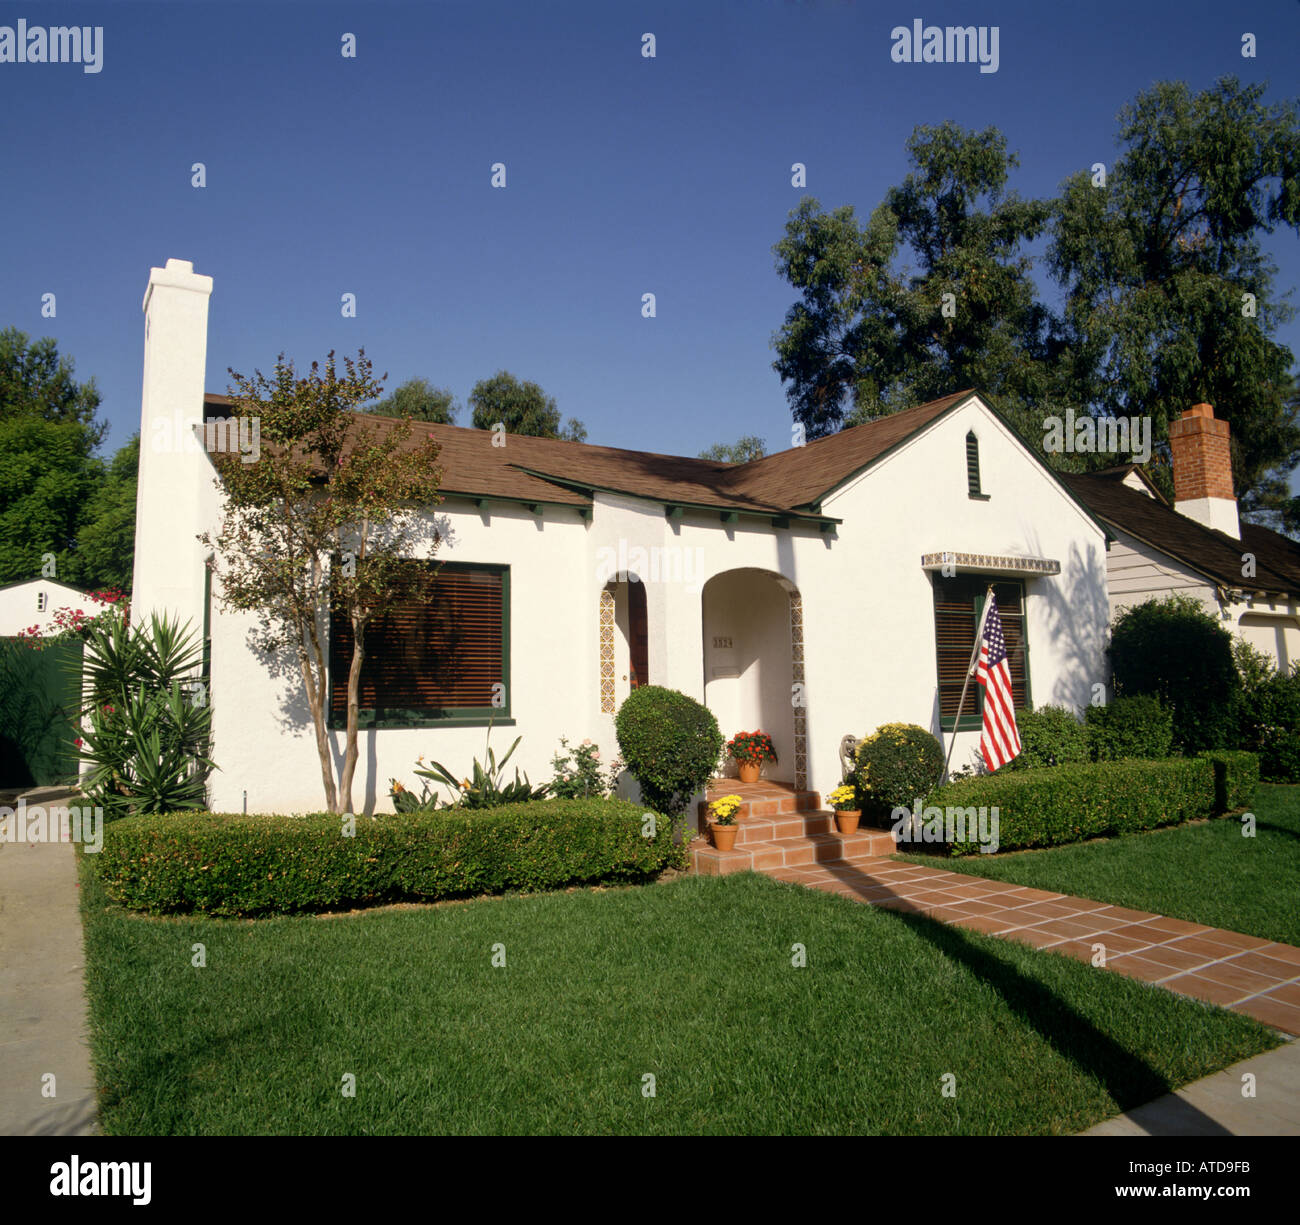 Single story white stucco house with a red tile roof palm tree and american flag